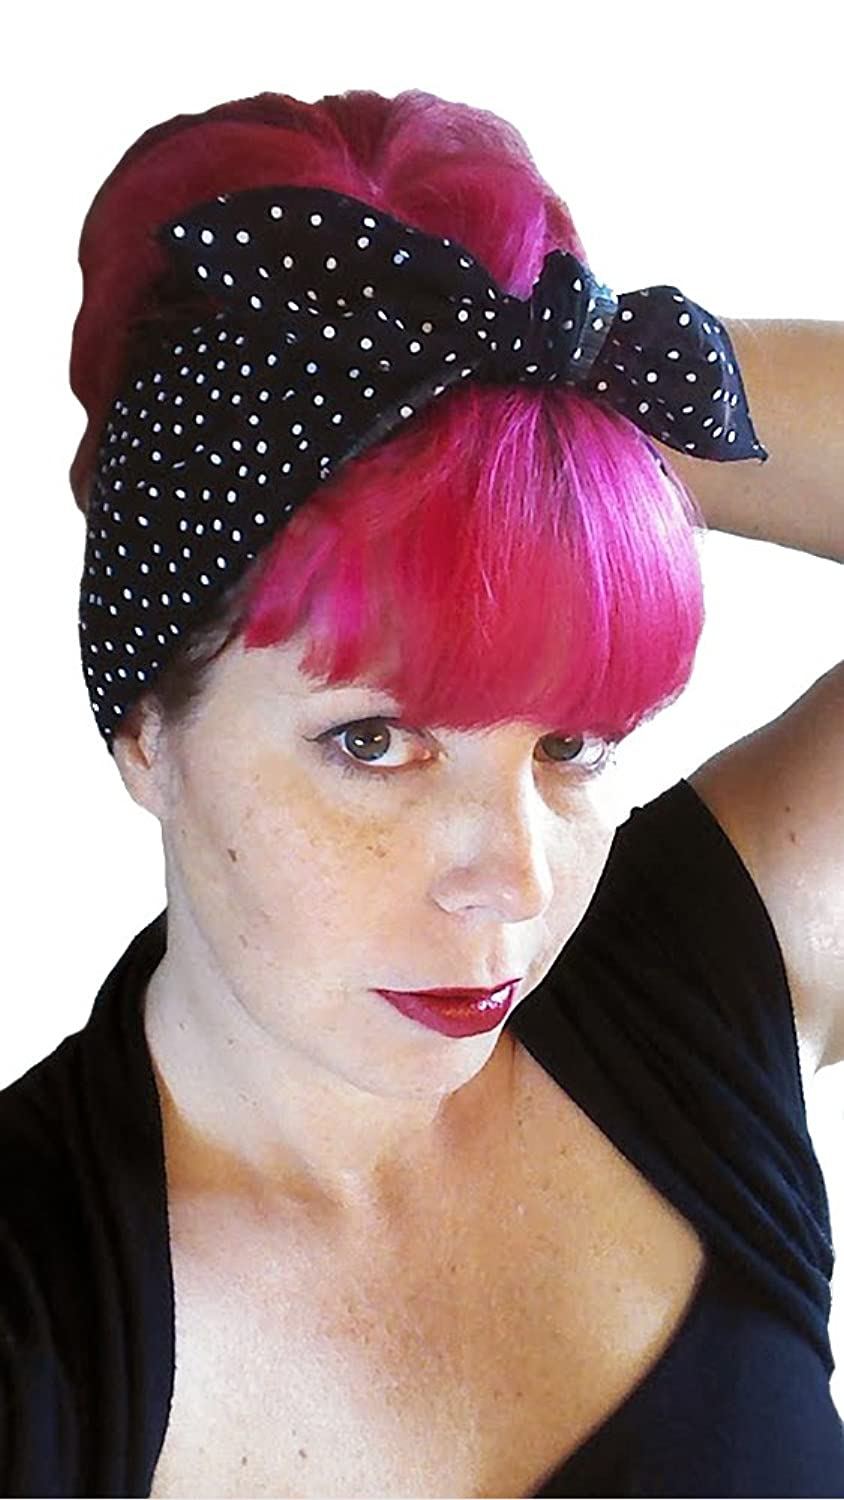 1940s Hair Accessories- Flowers, Snoods, Clips, Bandanas Spellbound Bows Black and White Tiny Polka Dot Wide One Sided Headwrap $7.99 AT vintagedancer.com